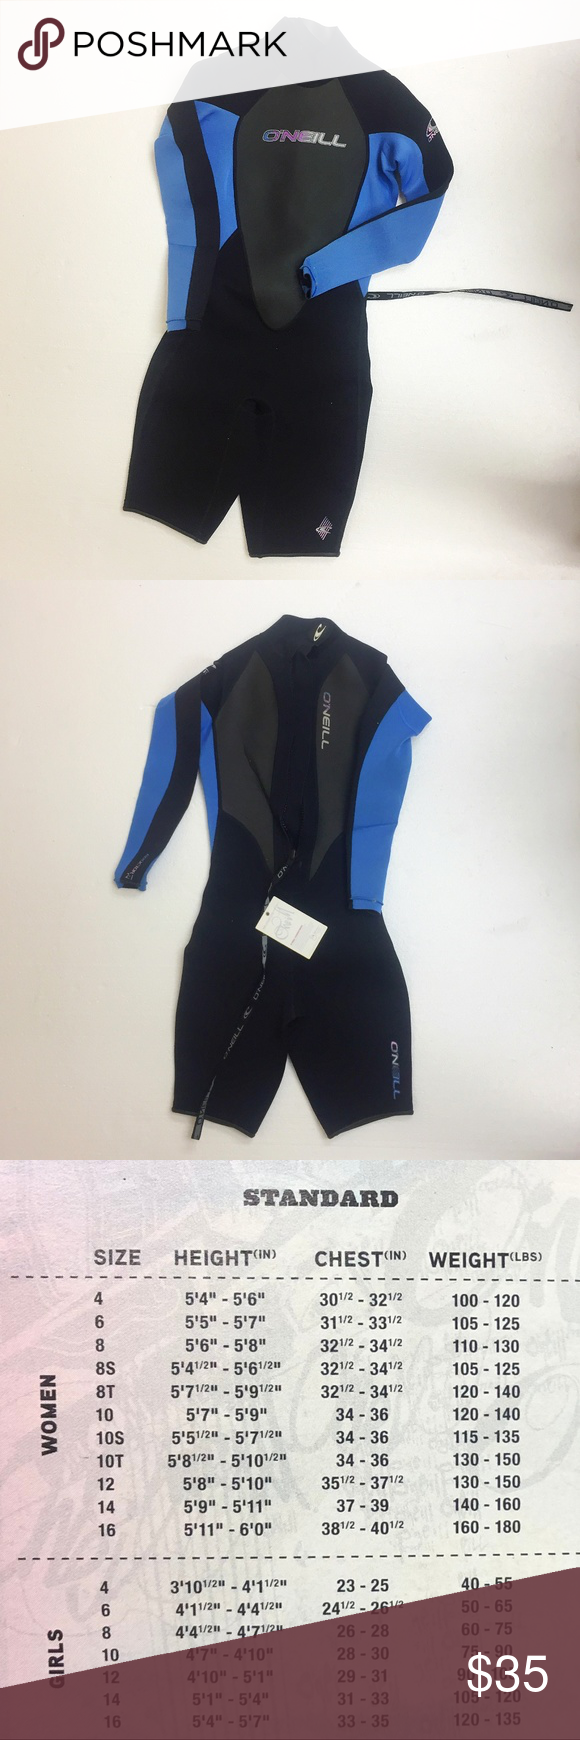 Women S Wetsuit O Neill Reactor Spring Long Sleeve Sizes 4 And 14 Available See Size Chart For Proper Fit Fluid Flex Cons Womens Wetsuit Wetsuit Long Sleeve